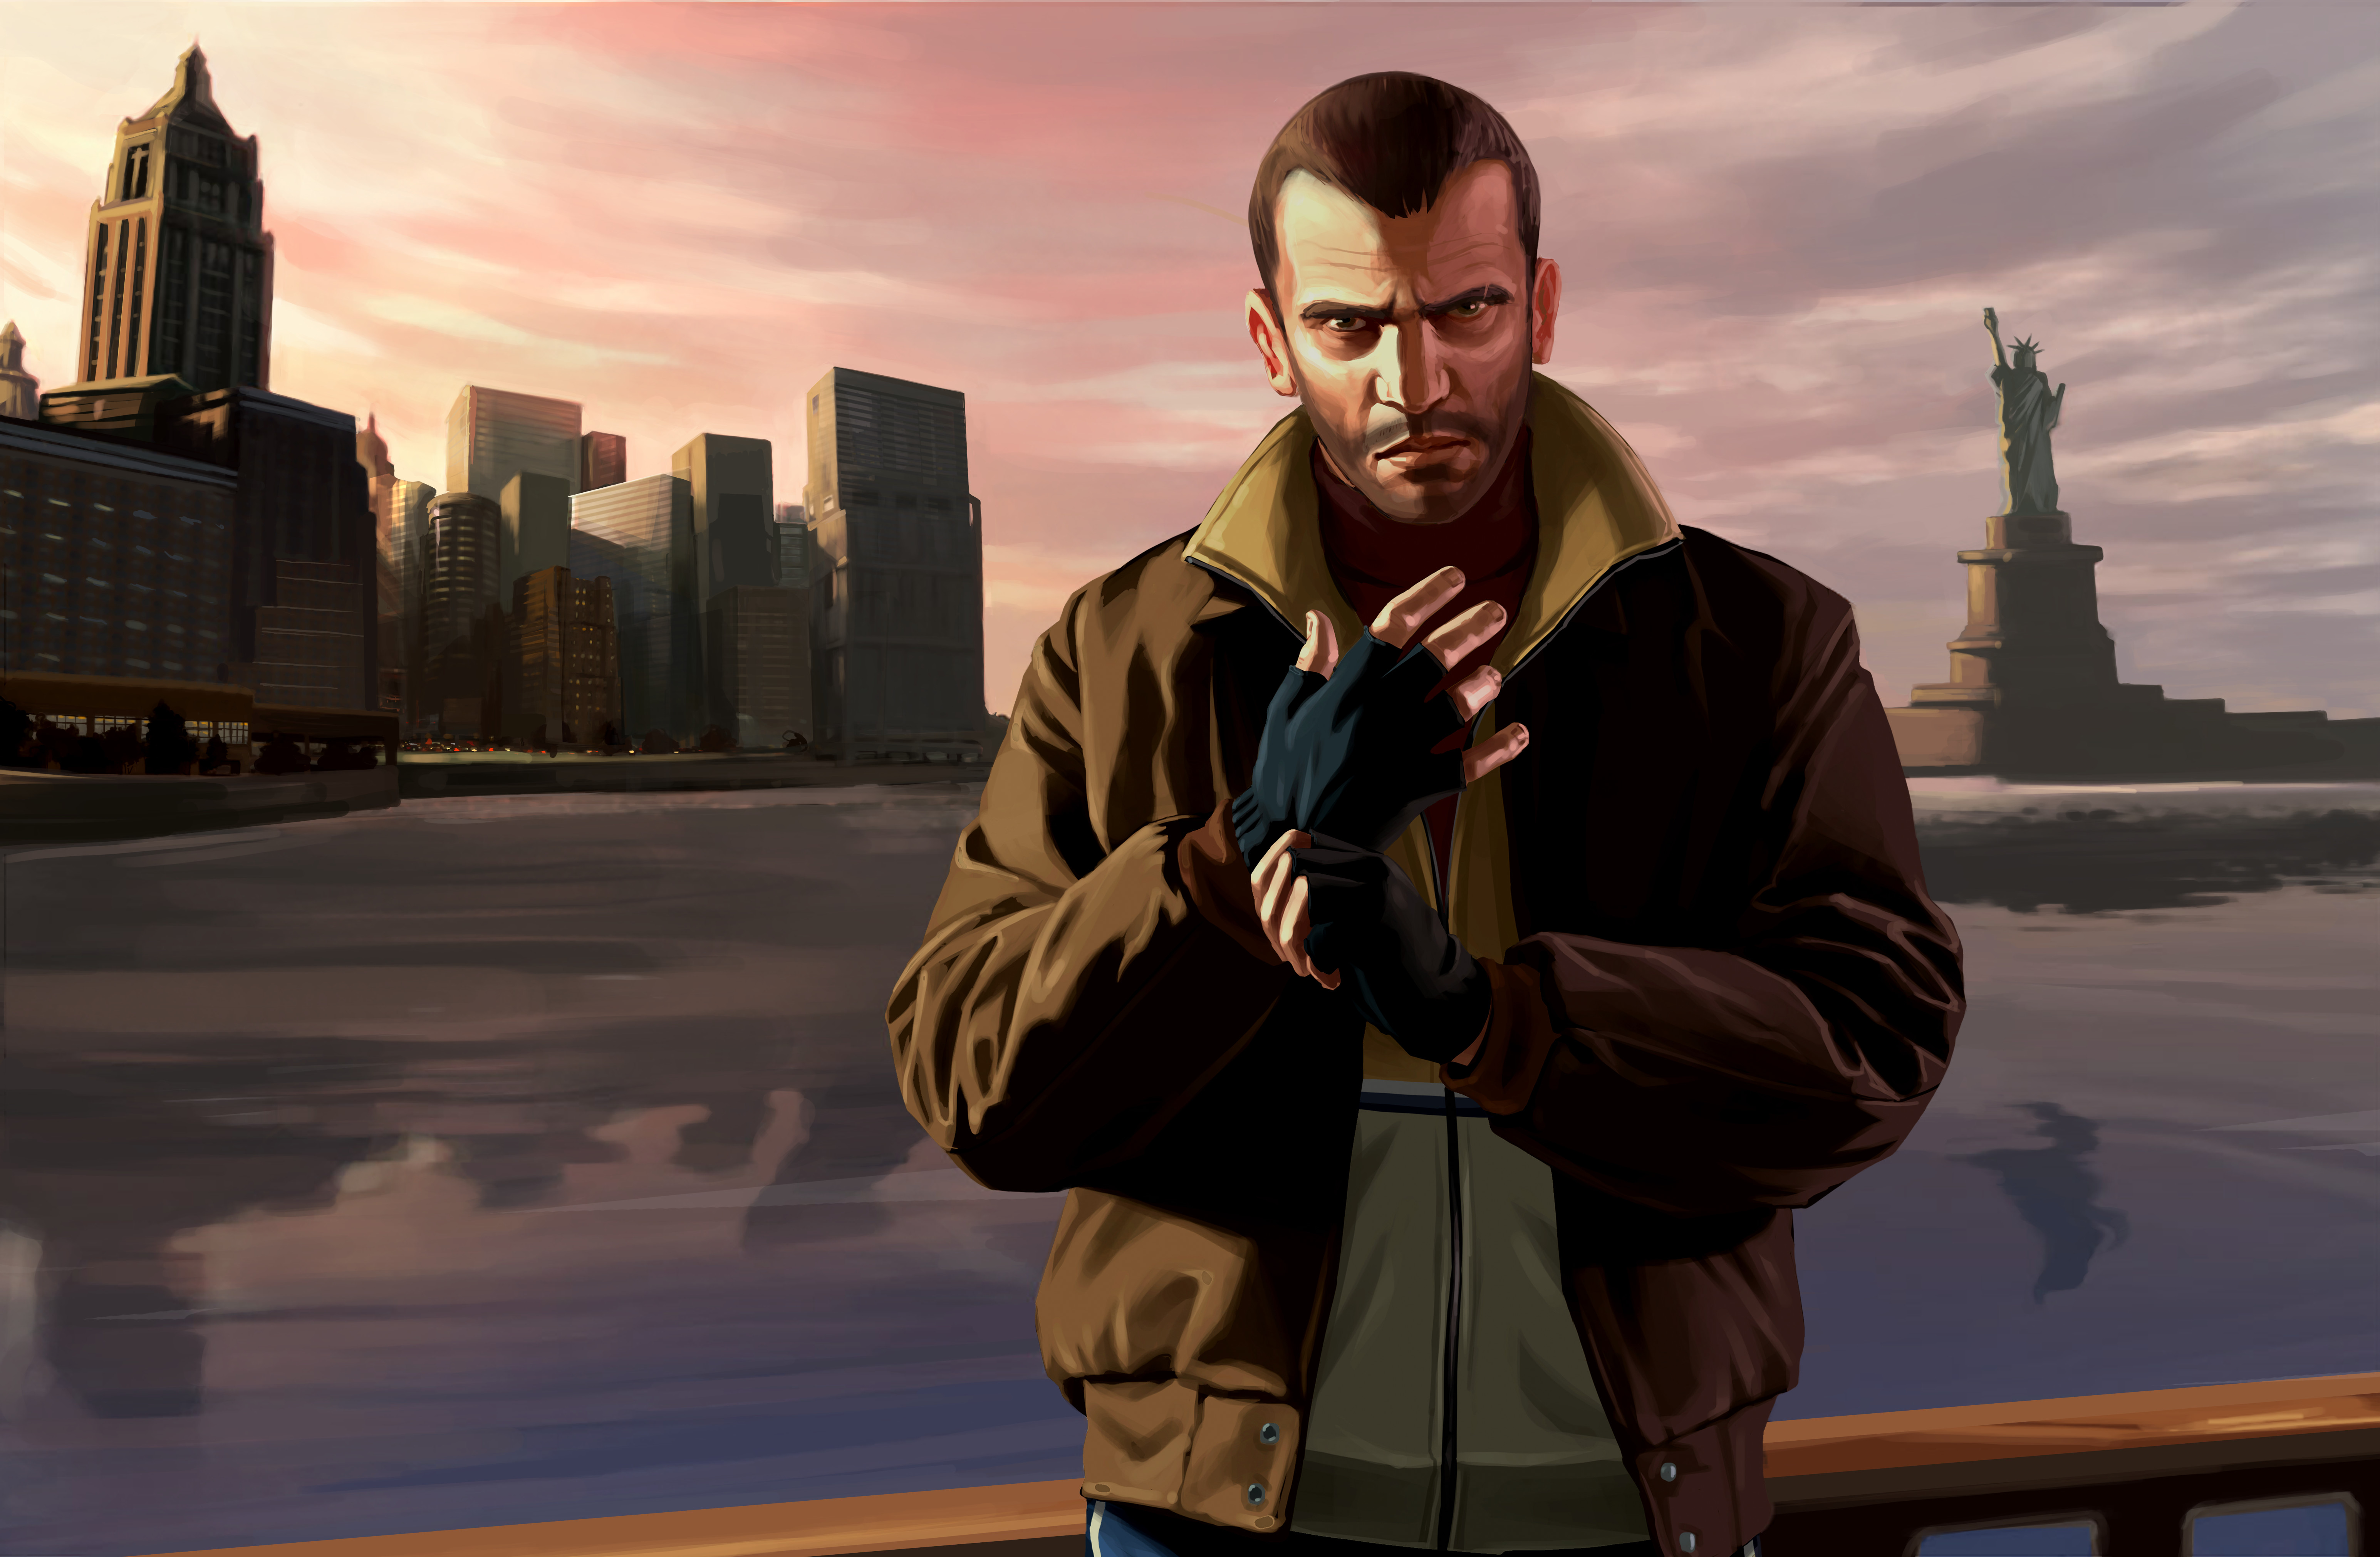 Grand Theft Auto IV is now backward compatible with Xbox One